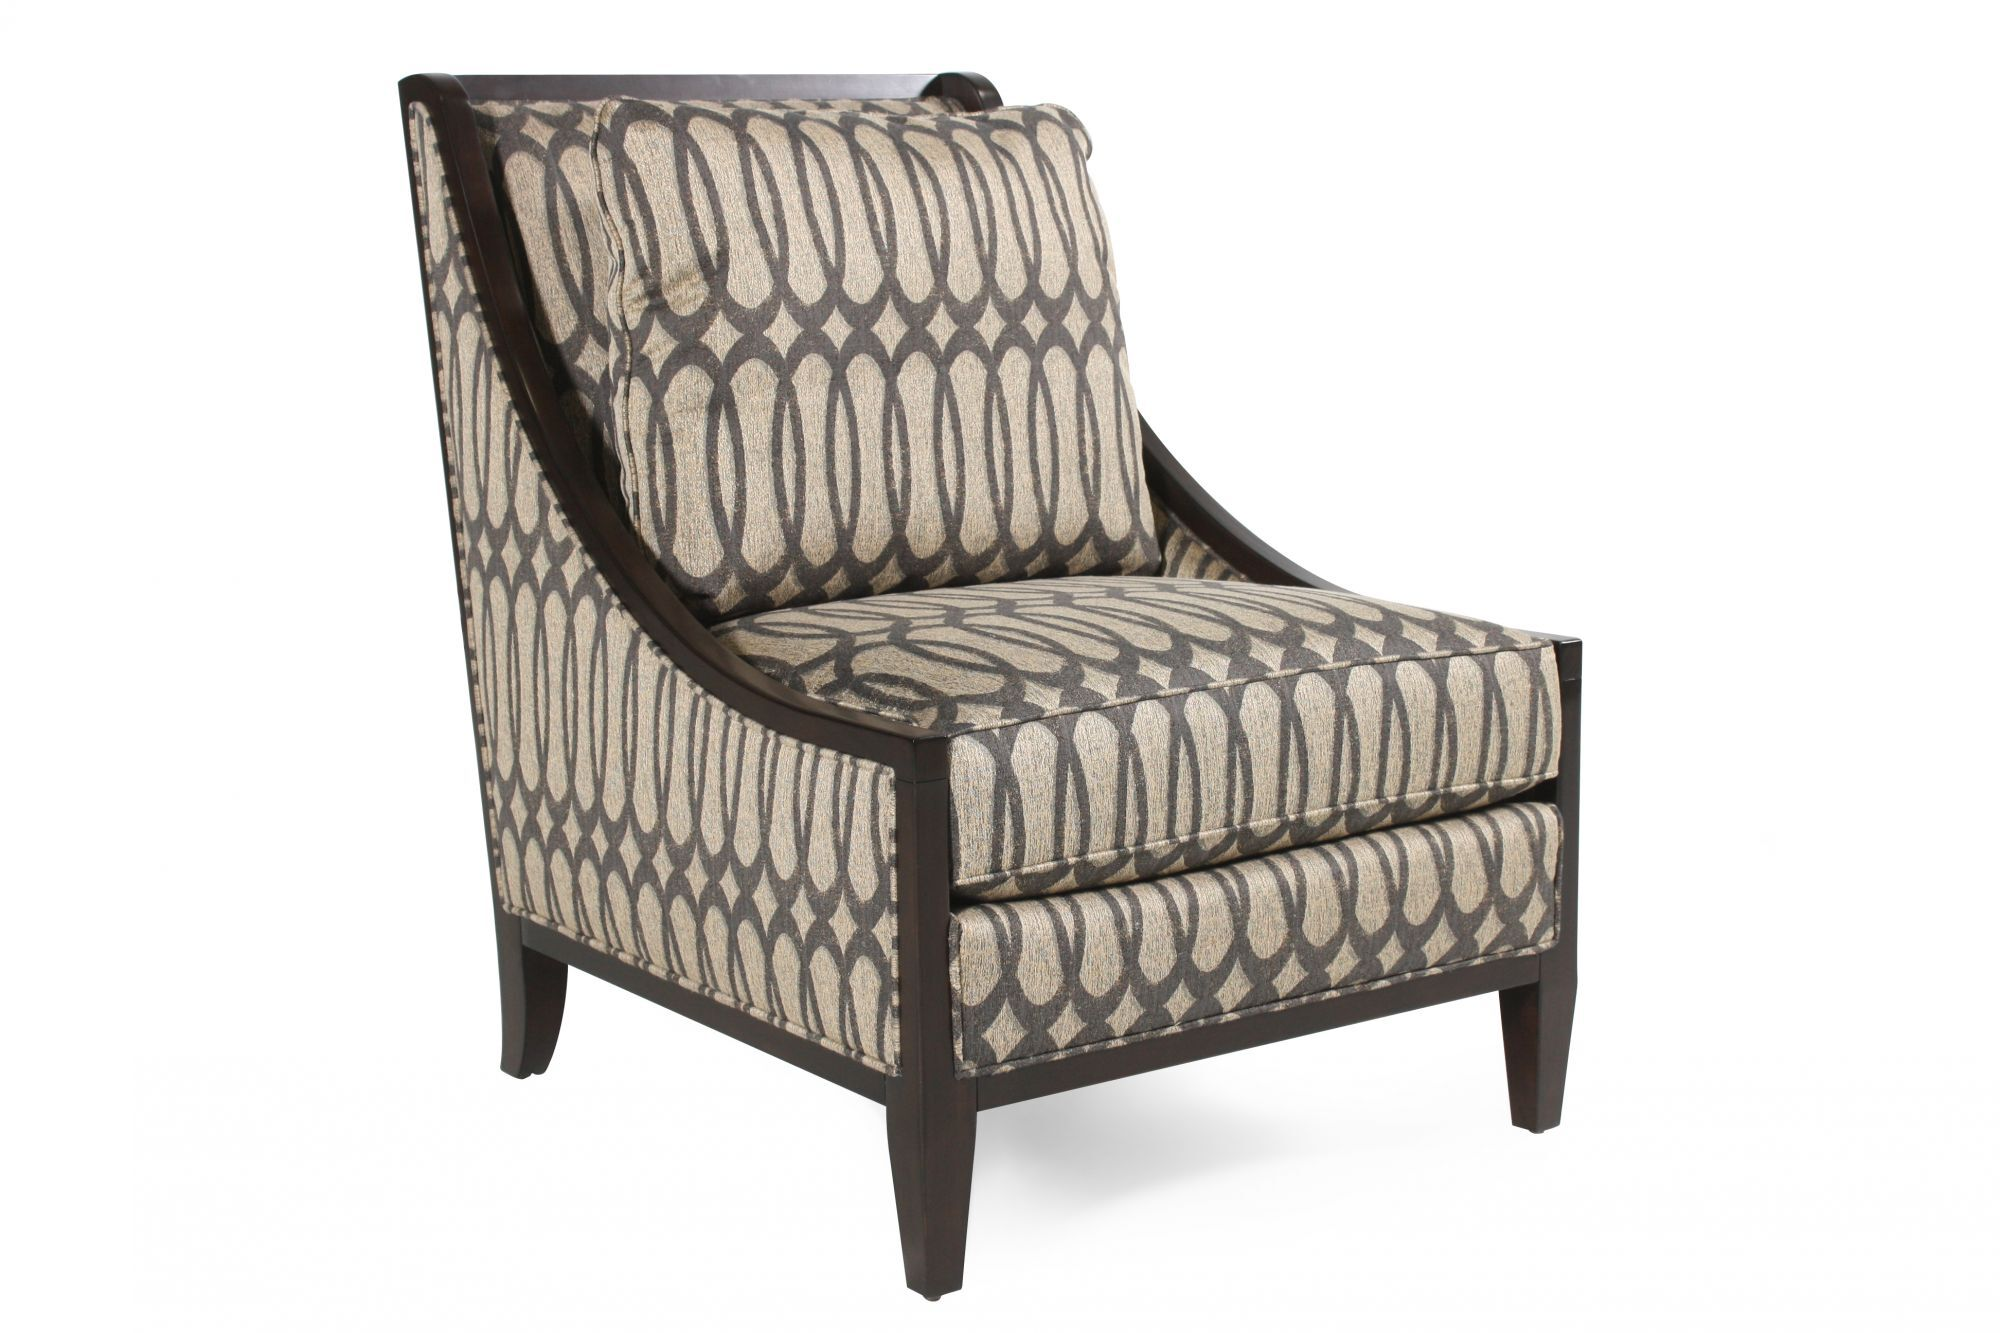 ovoid patterned contemporary accent chair in gray mathis. Black Bedroom Furniture Sets. Home Design Ideas